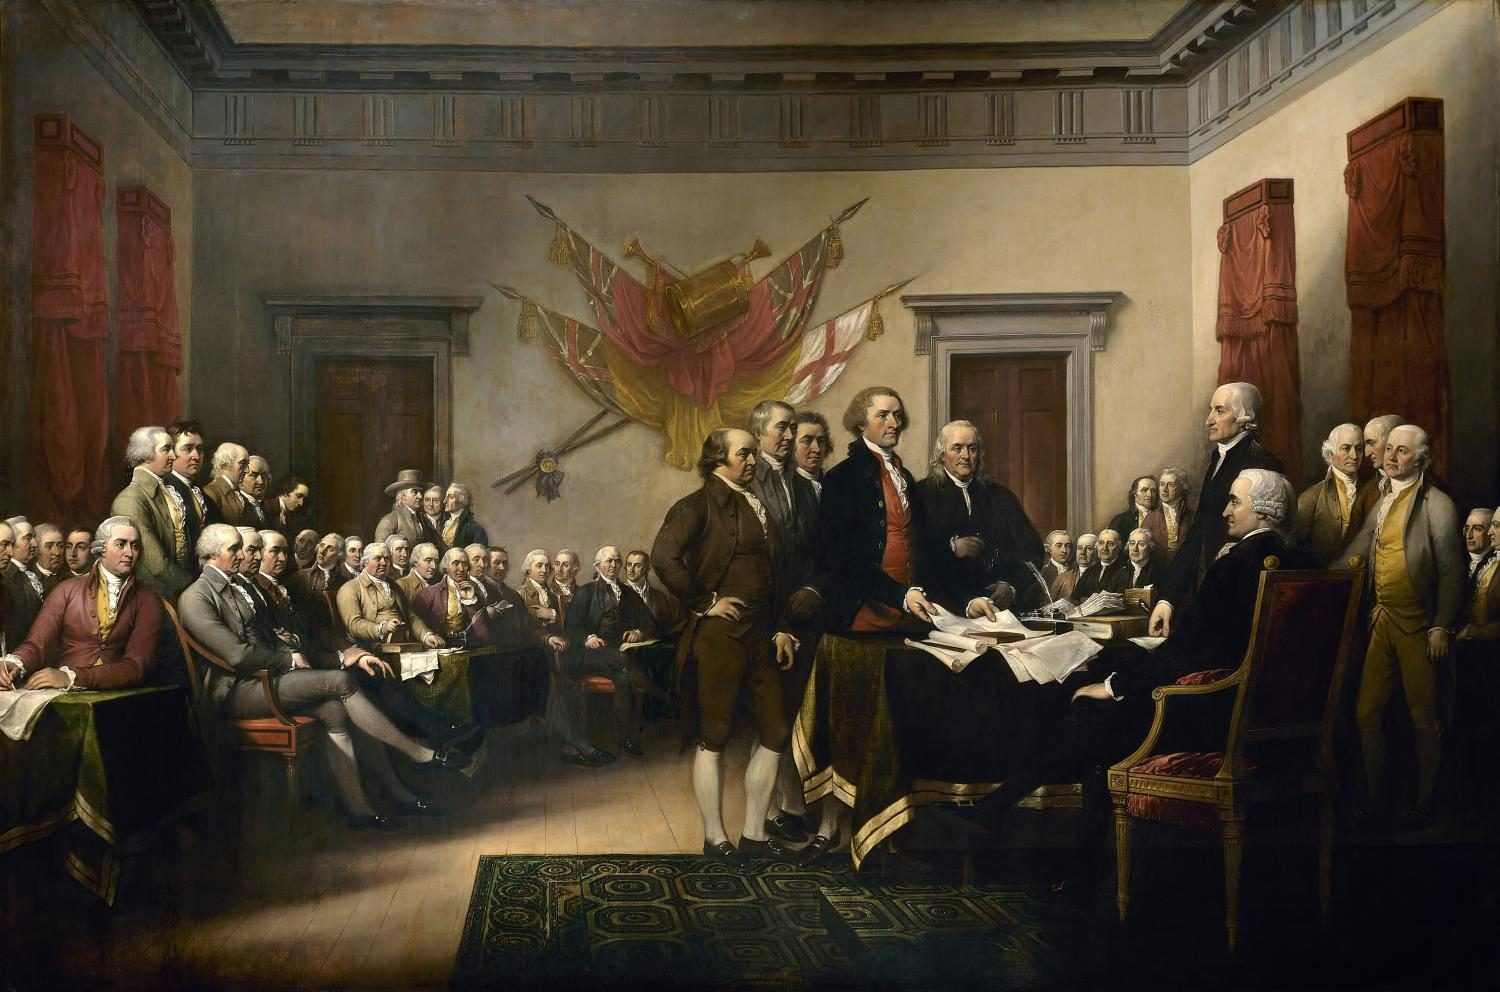 Presenting+a+draft+of+the+Declaration+of+Independence%2C+fifty+men+are+circled+around+the+room+in+John+Trumbull%E2%80%99s+famous+painting+fittingly+titled+%E2%80%9CDeclaration+of+Independence.%E2%80%9D+Recently%2C+a+parchment+of+the+Declaration+of+Independence+was+discovered+in+the+United+Kingdom+by+Danielle+Allen+and+Emily+Sneff.